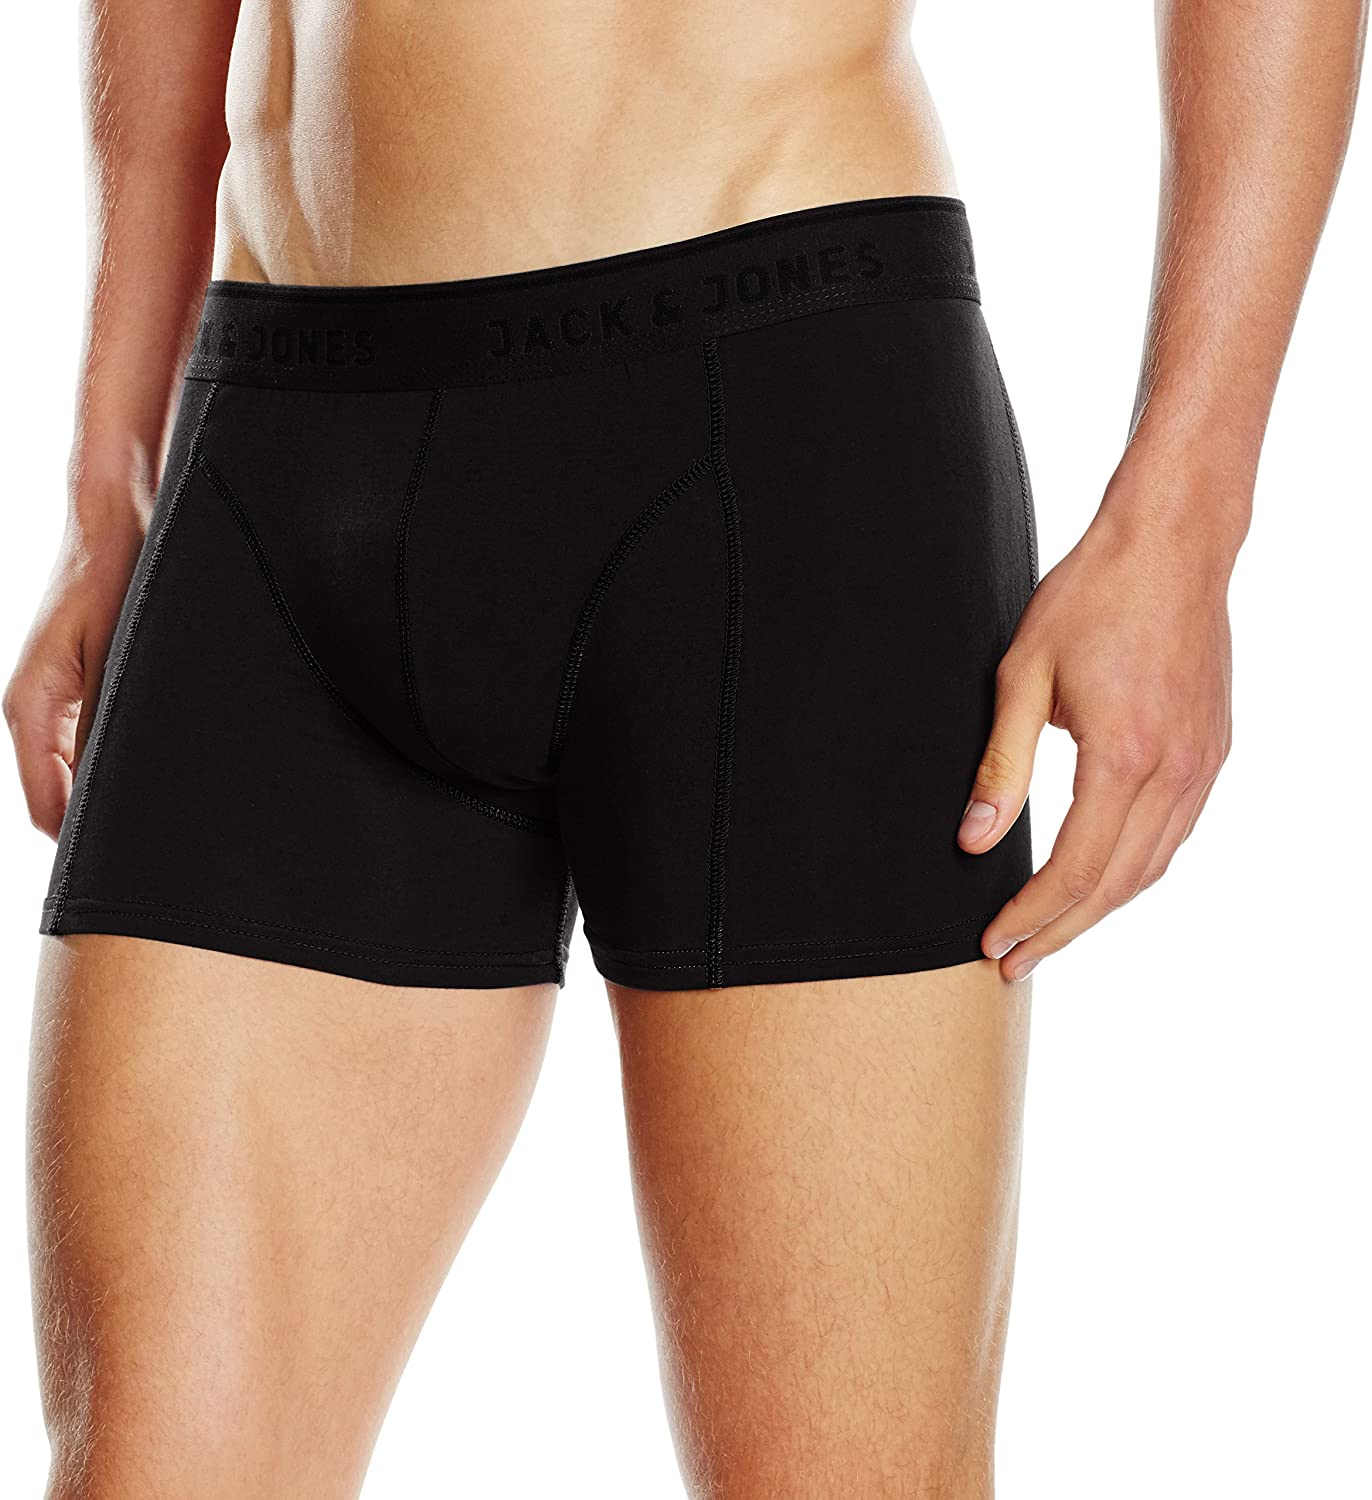 Jack & Jones Jacsimple Trunks Noos Bóxer para Hombre: Amazon.es ...